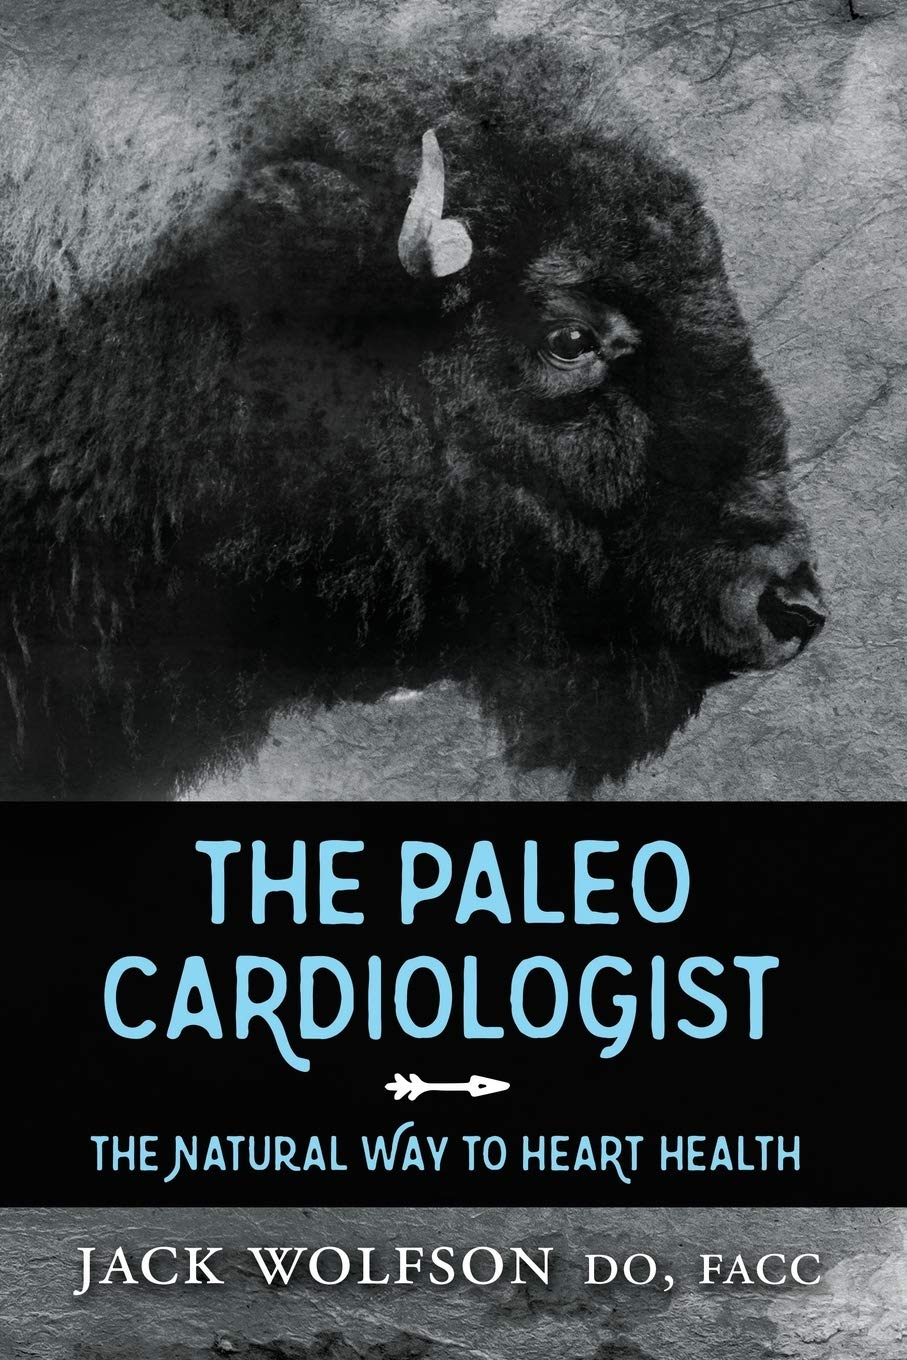 The Paleo Cardiologist: The Natural Way to Heart